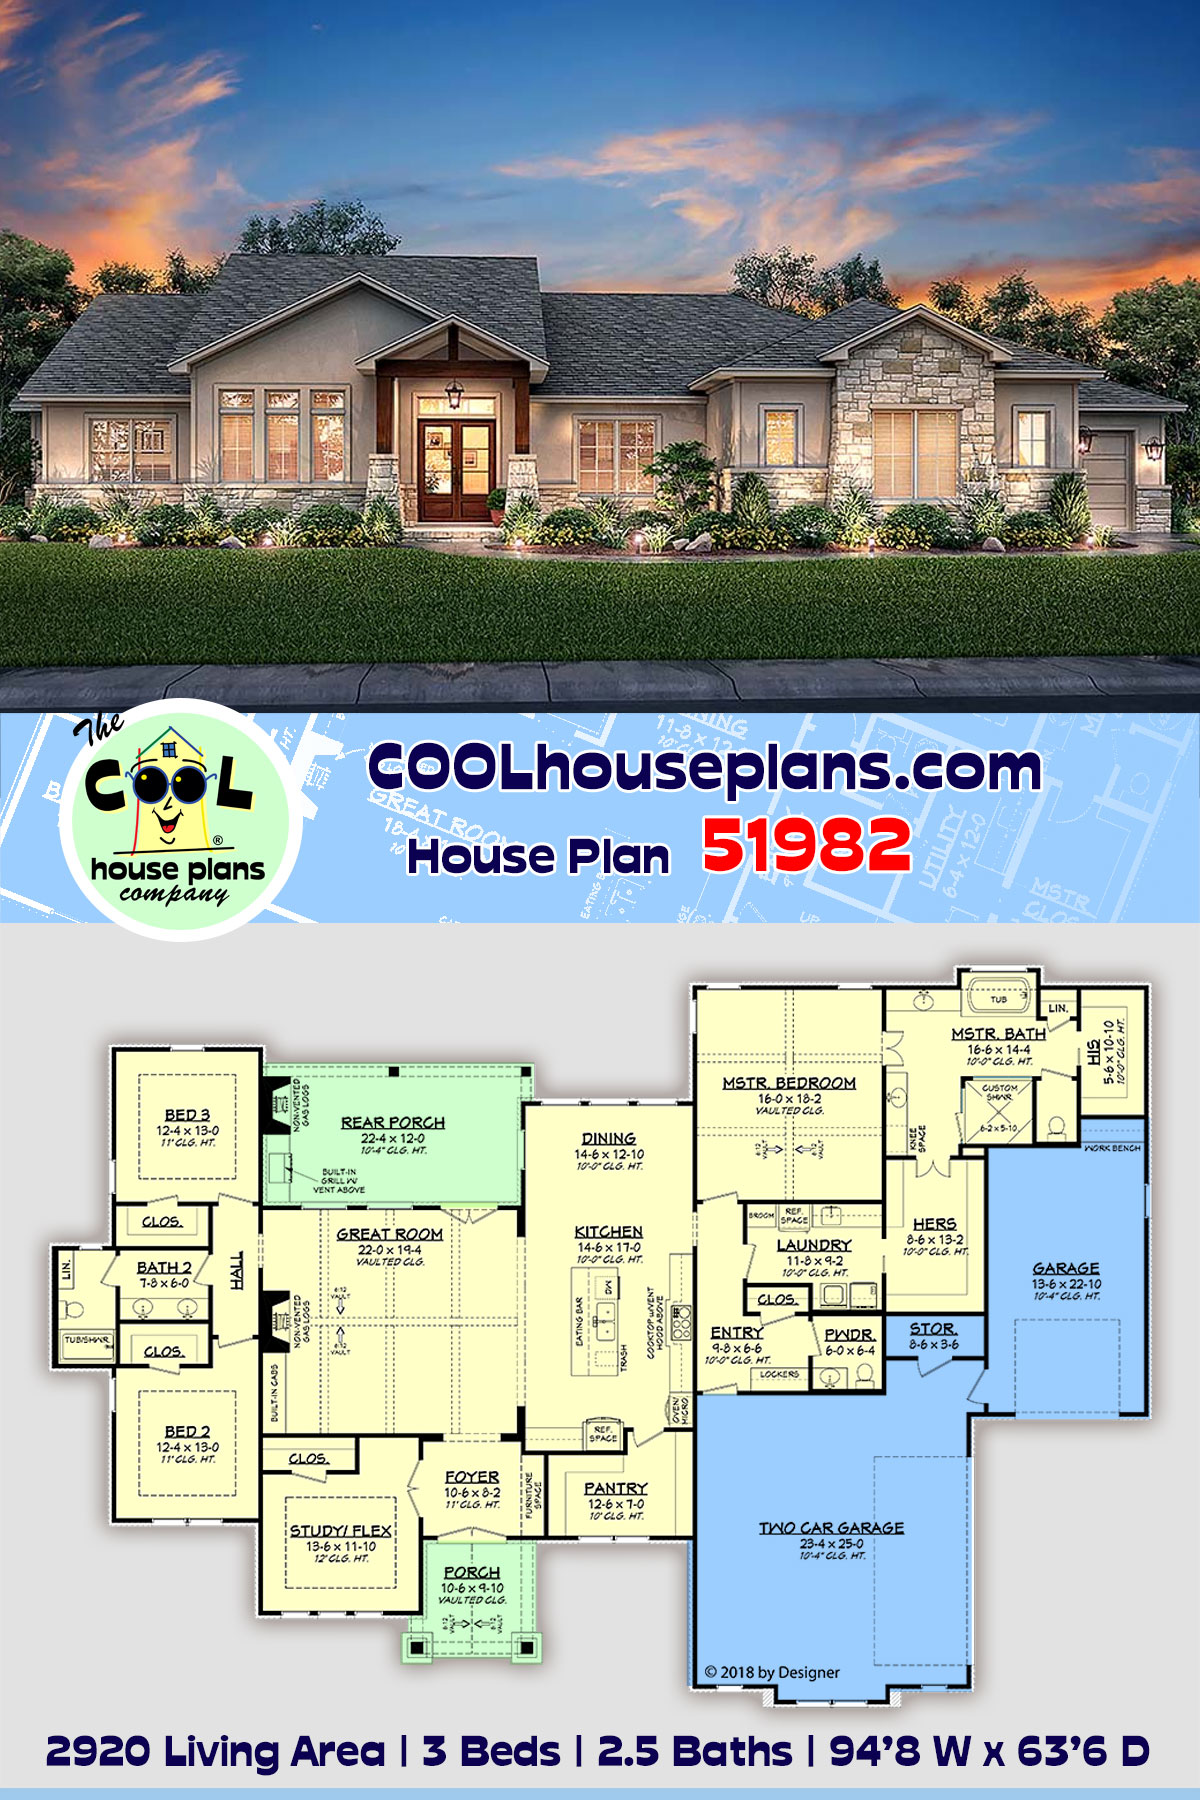 Bungalow, Contemporary, Cottage, Craftsman, Tuscan House Plan 51982 with 3 Beds, 3 Baths, 3 Car Garage